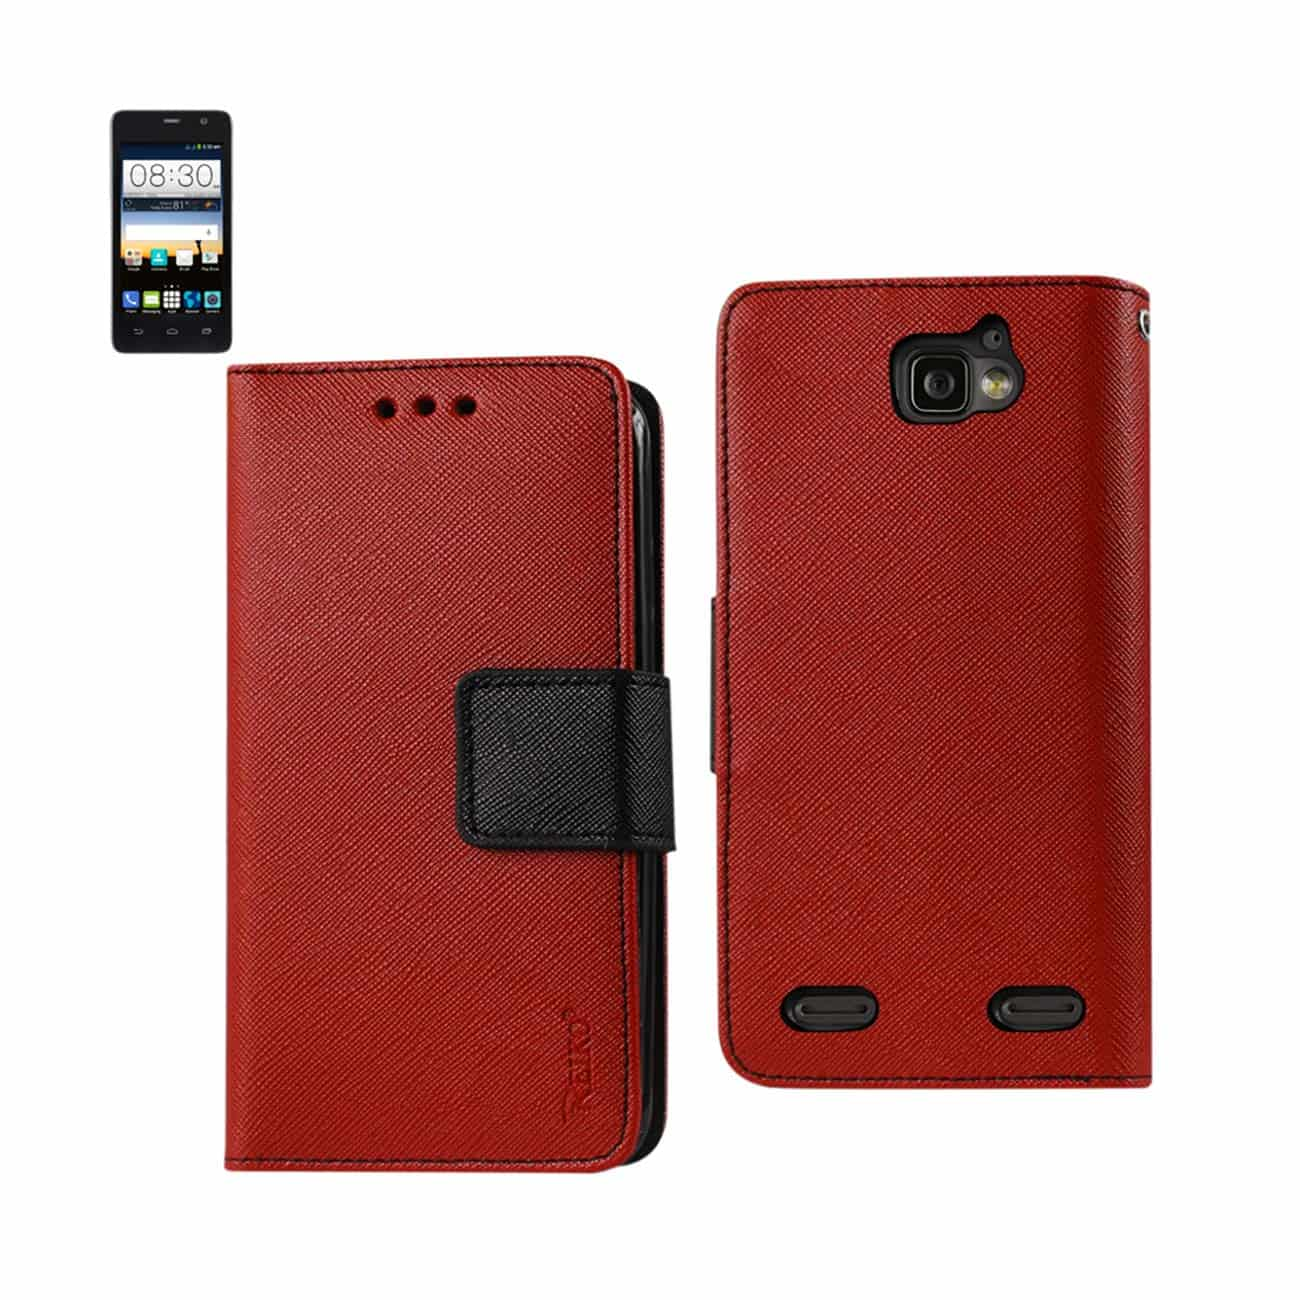 ZTE SONATA 2 3-IN-1 WALLET CASE IN RED